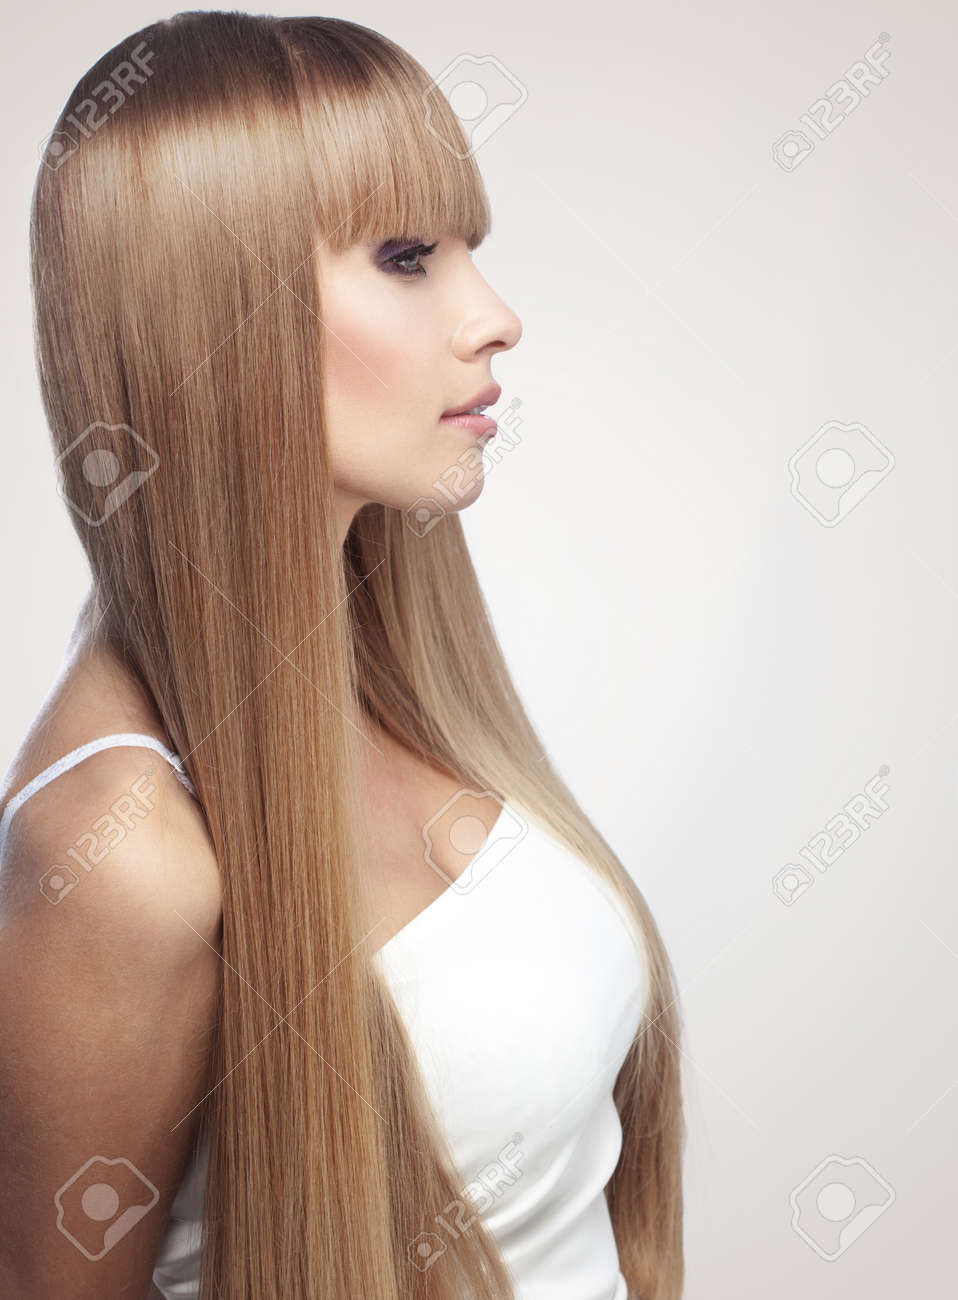 Portrait of beautiful girl with perfect long shiny blond hair studio shot Stock Photo - 21511752